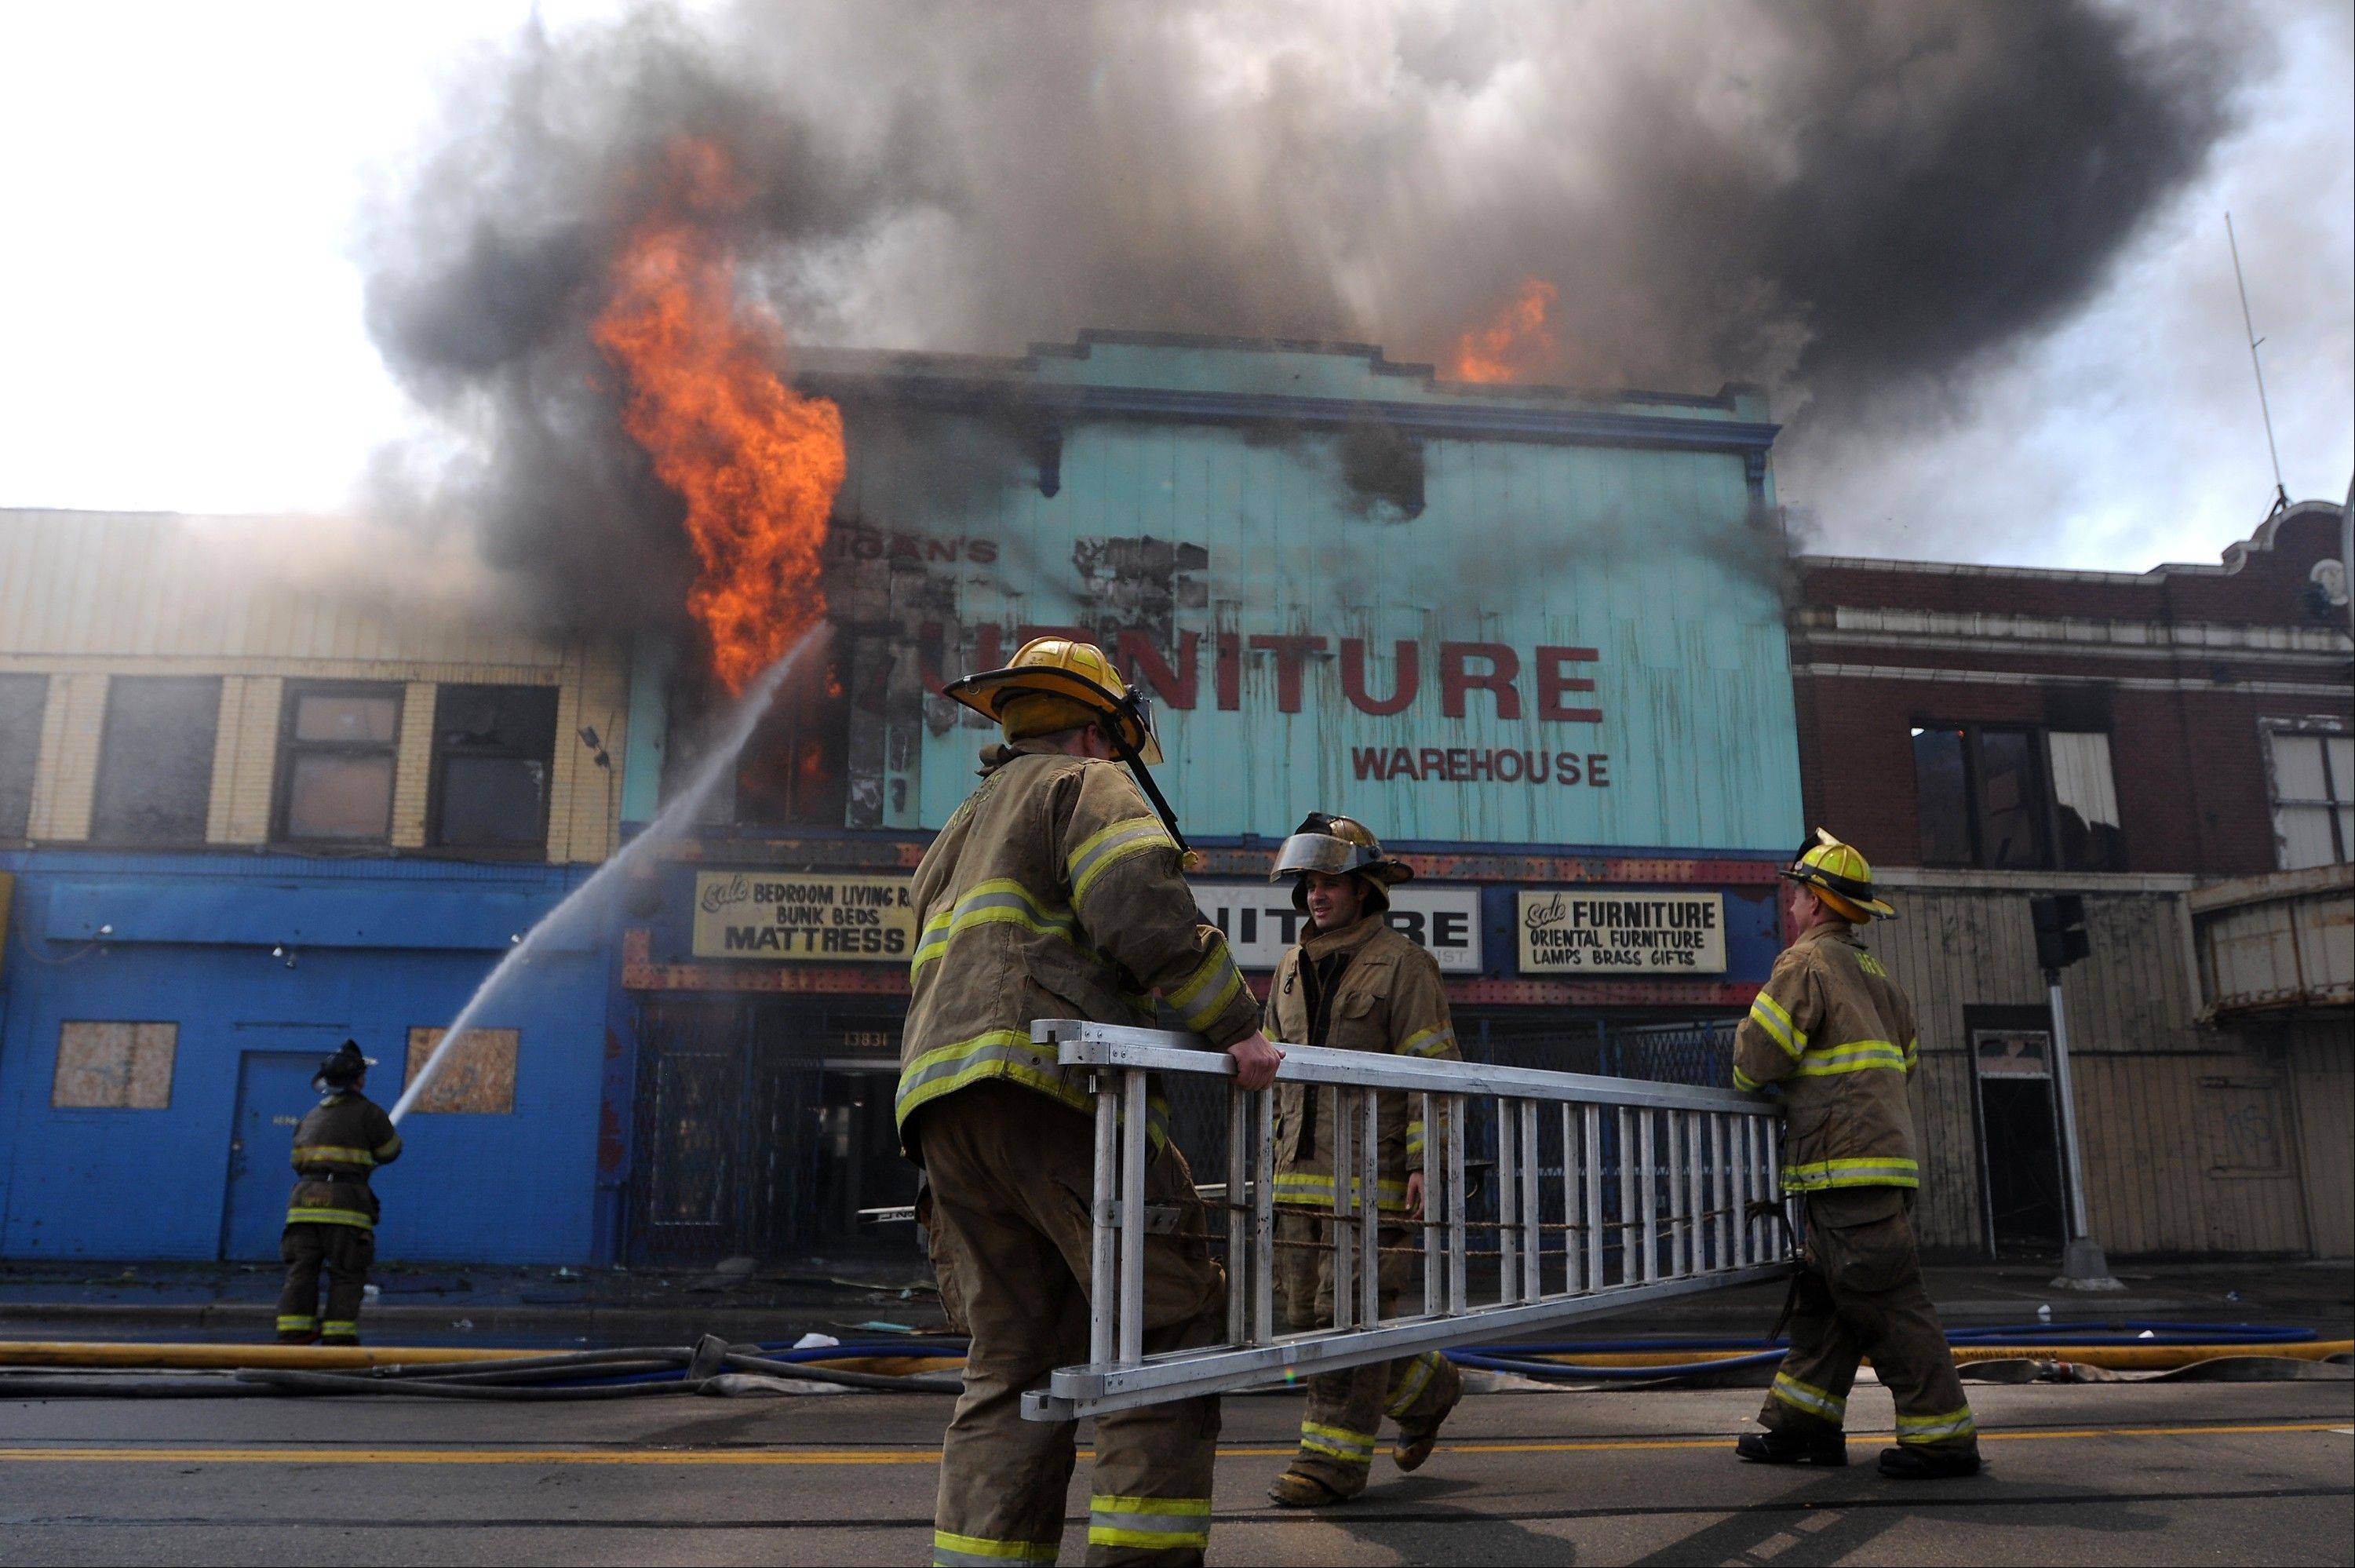 A report filed Monday by Detroit�s emergency manager said the city is broke and without a massive infusion of cash or severe penny-pinching will be unable to pay for its services, including firefighting. Above, Detroit firefighters battle a building fire.